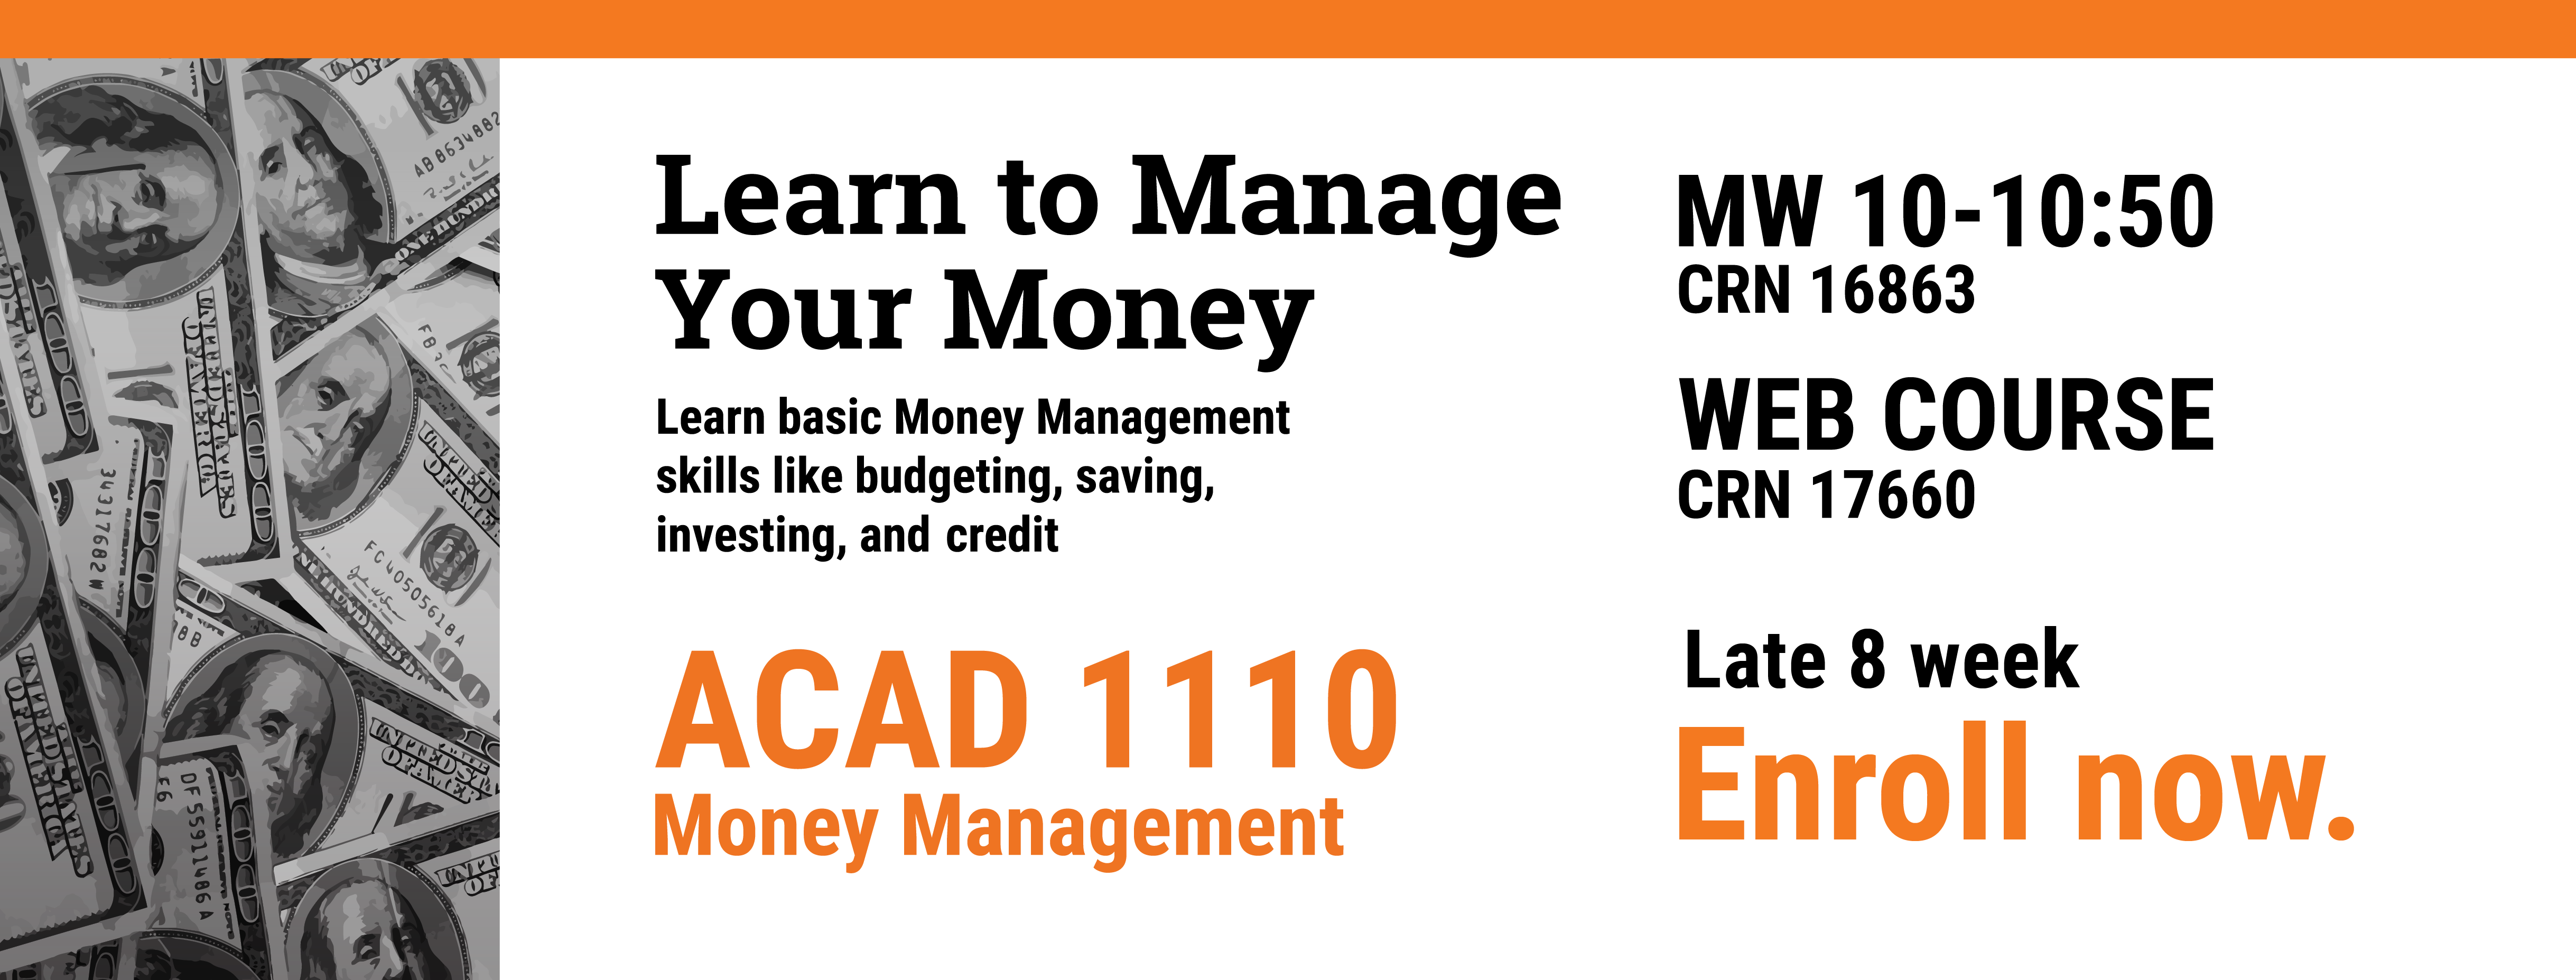 Enroll for ACAD 1110 Money management  in bengal web